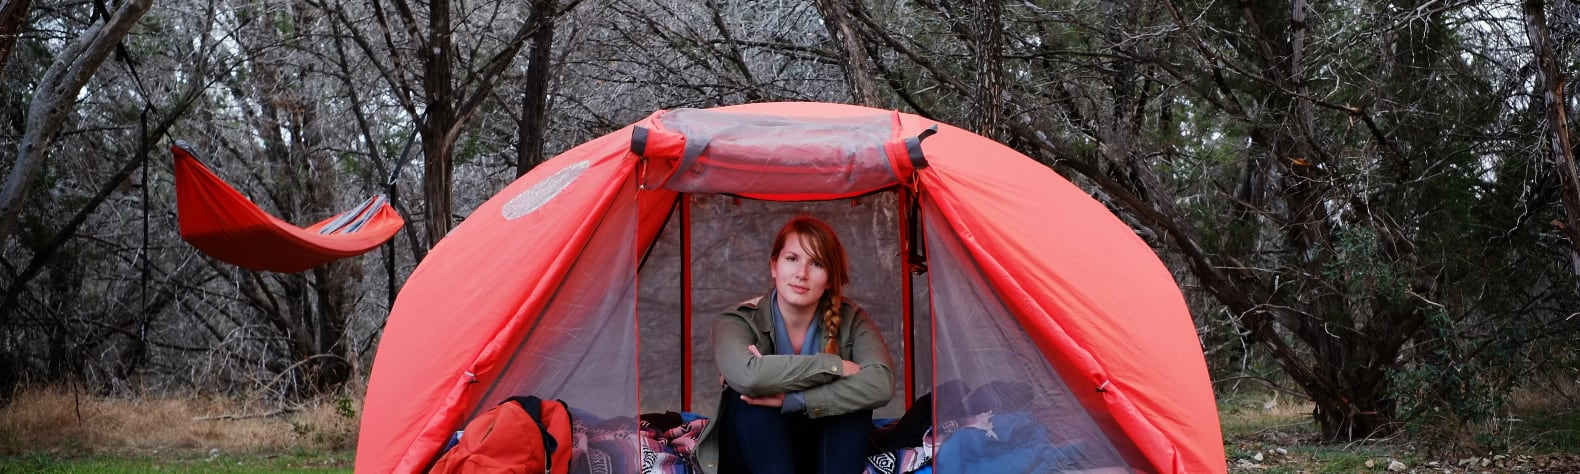 20 Amazing Campsites Near Guadalupe River State Park